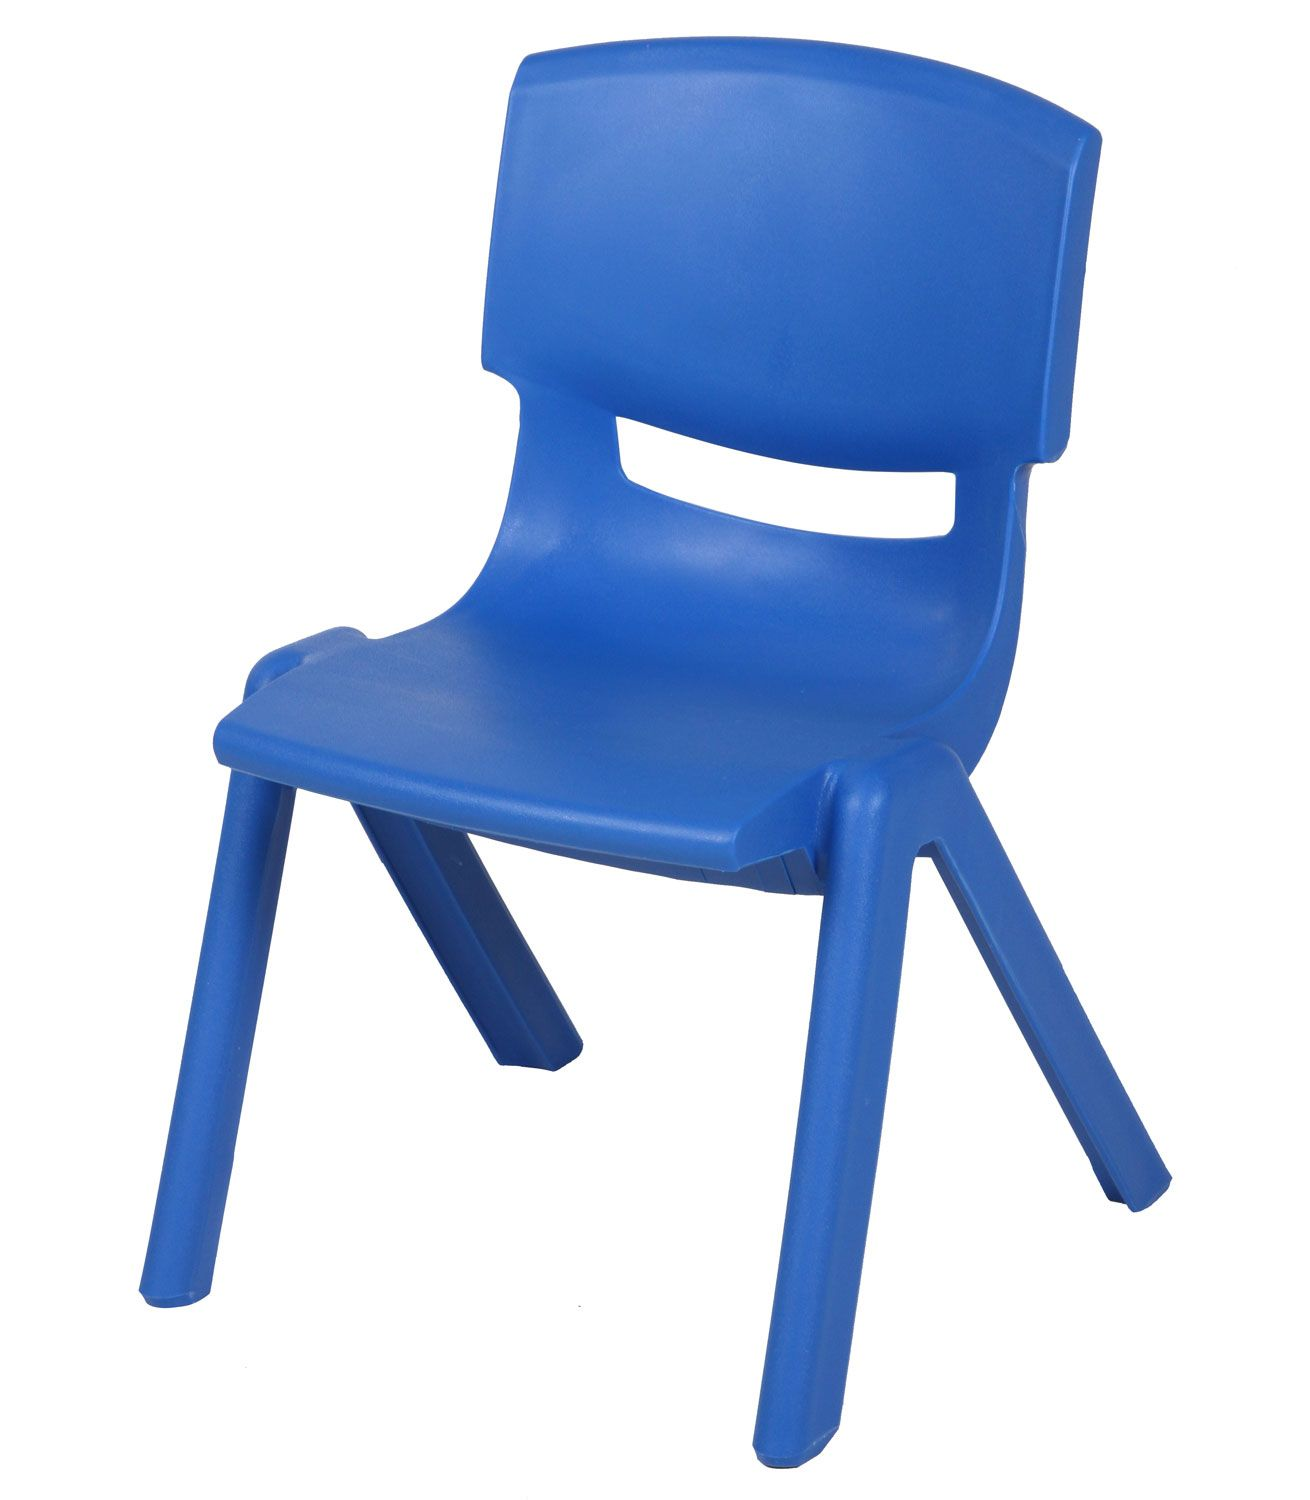 Kiddicare Childrens Plastic Chair Blue School Chairs Plastic Chair Kids Plastic Chairs